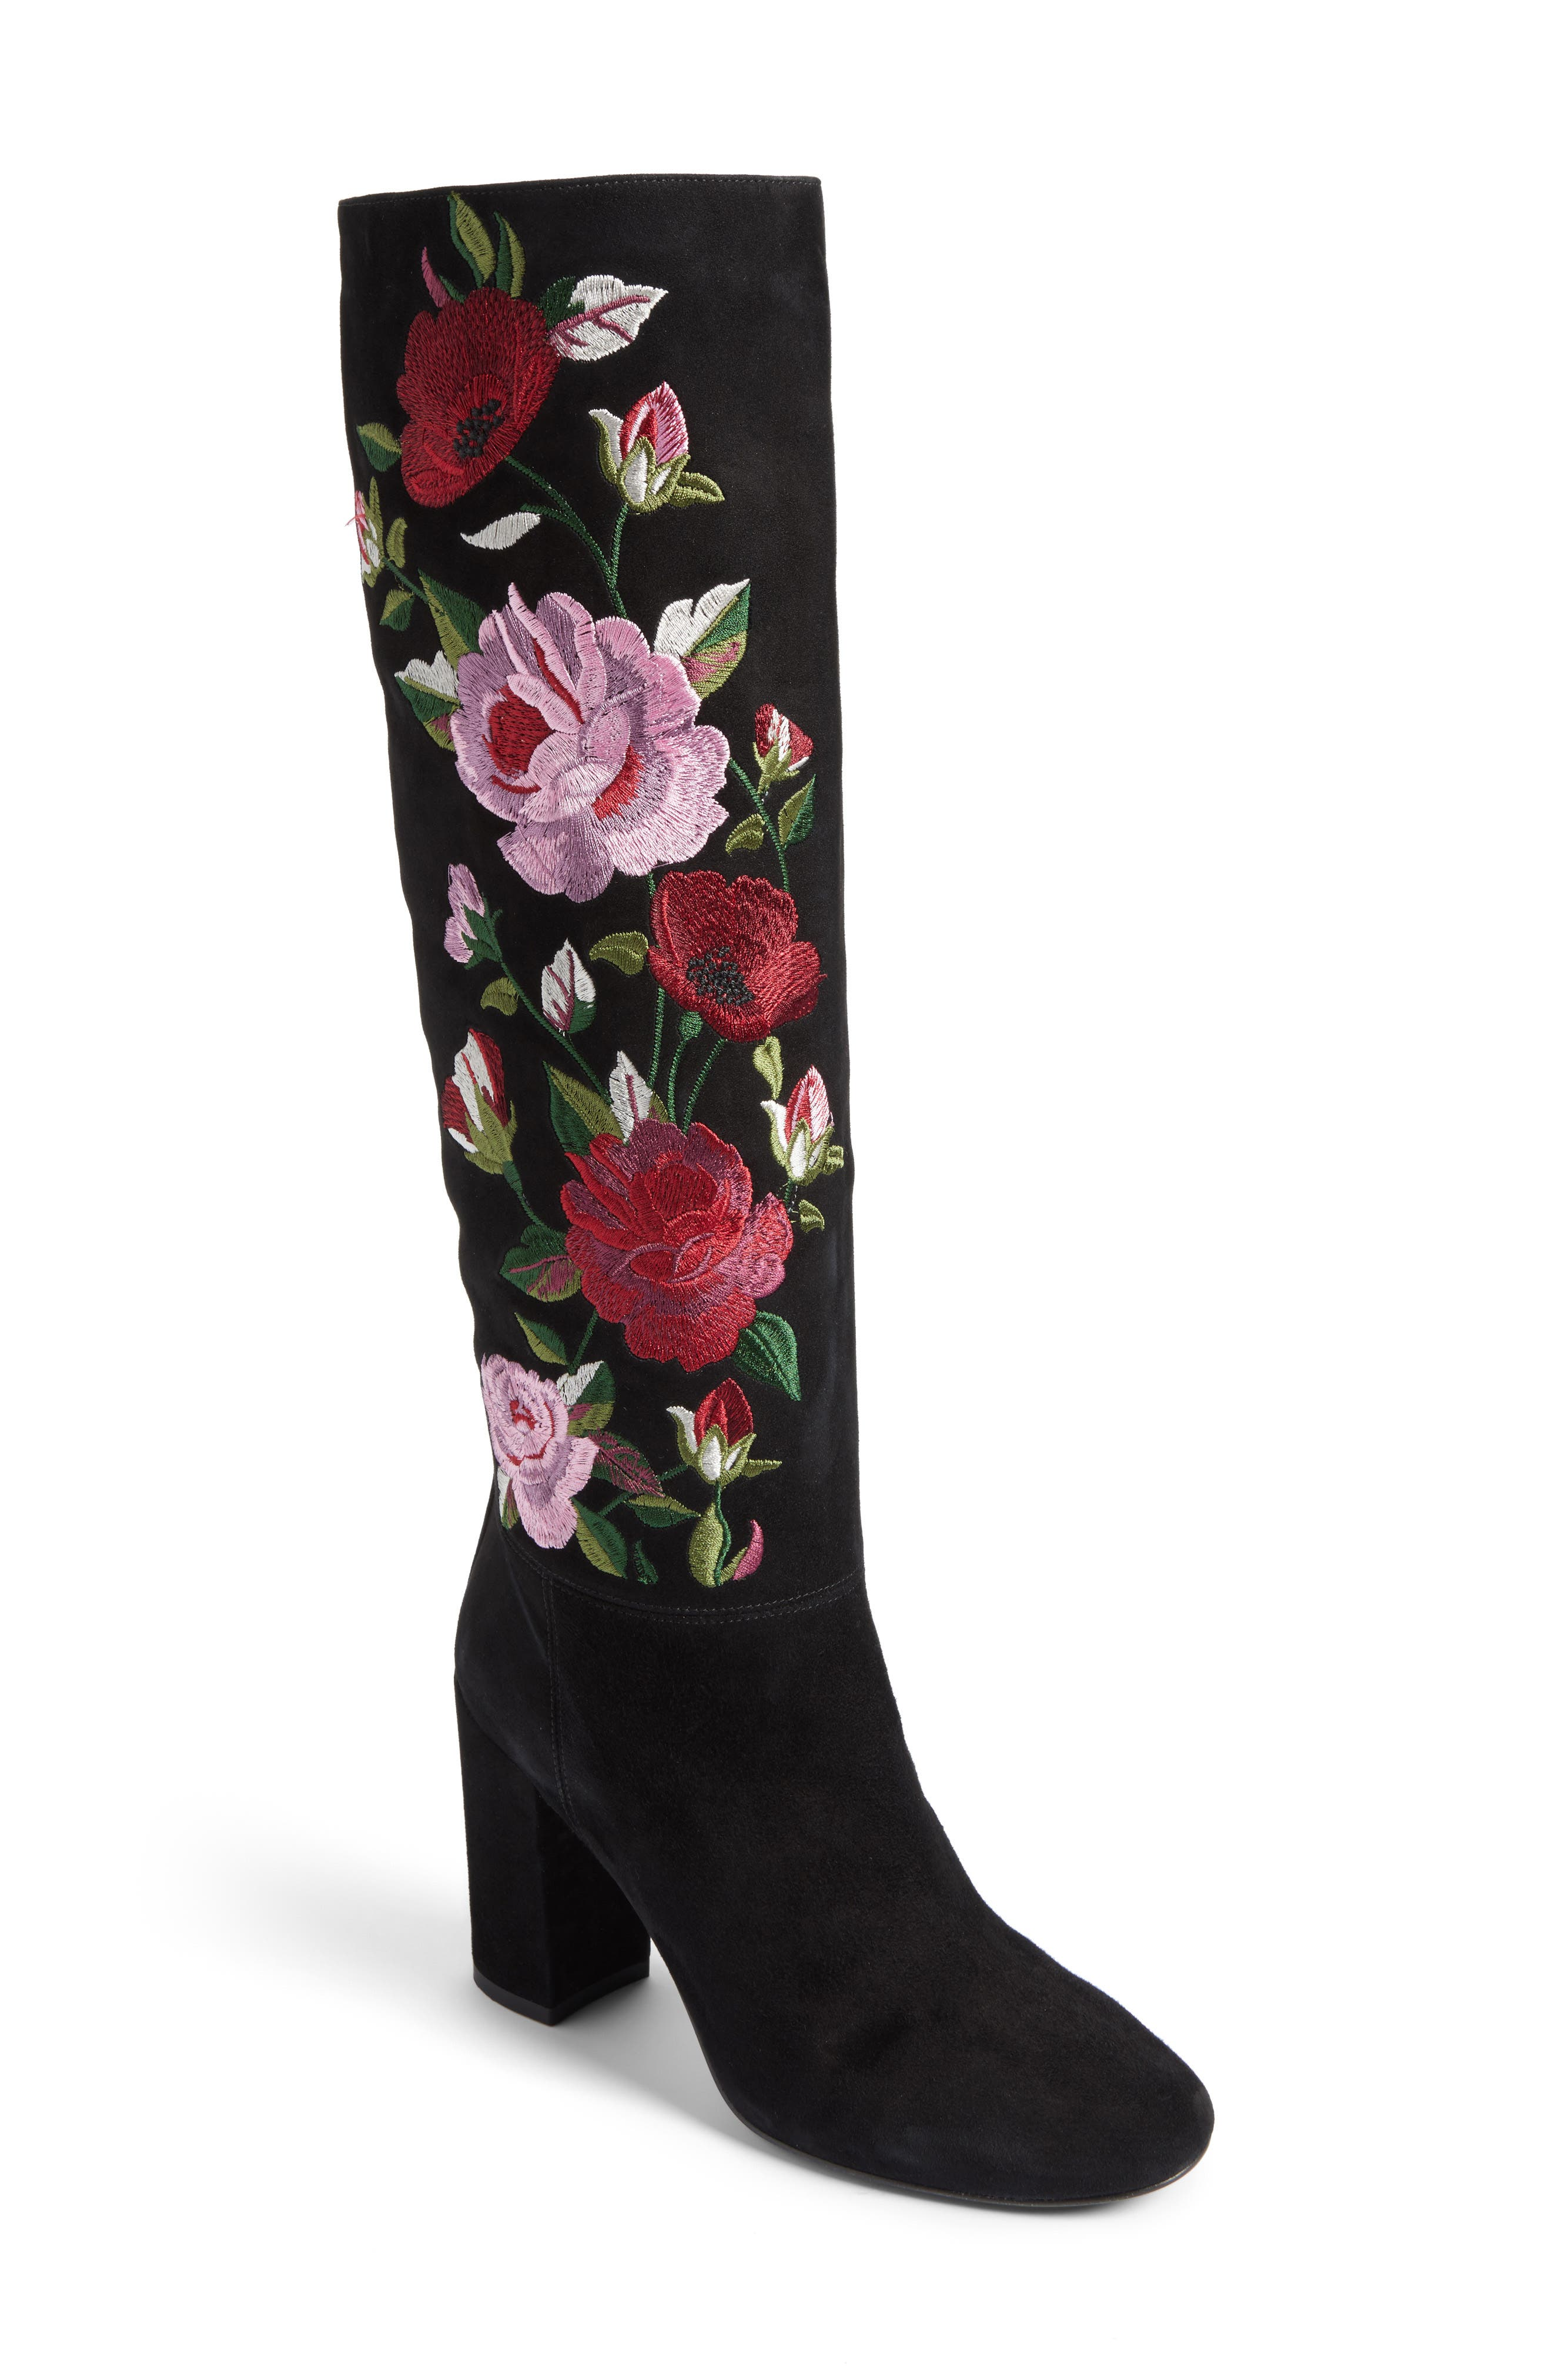 Alternate Image 1 Selected - kate spade new york greenfield flower embroidered boot (Women)